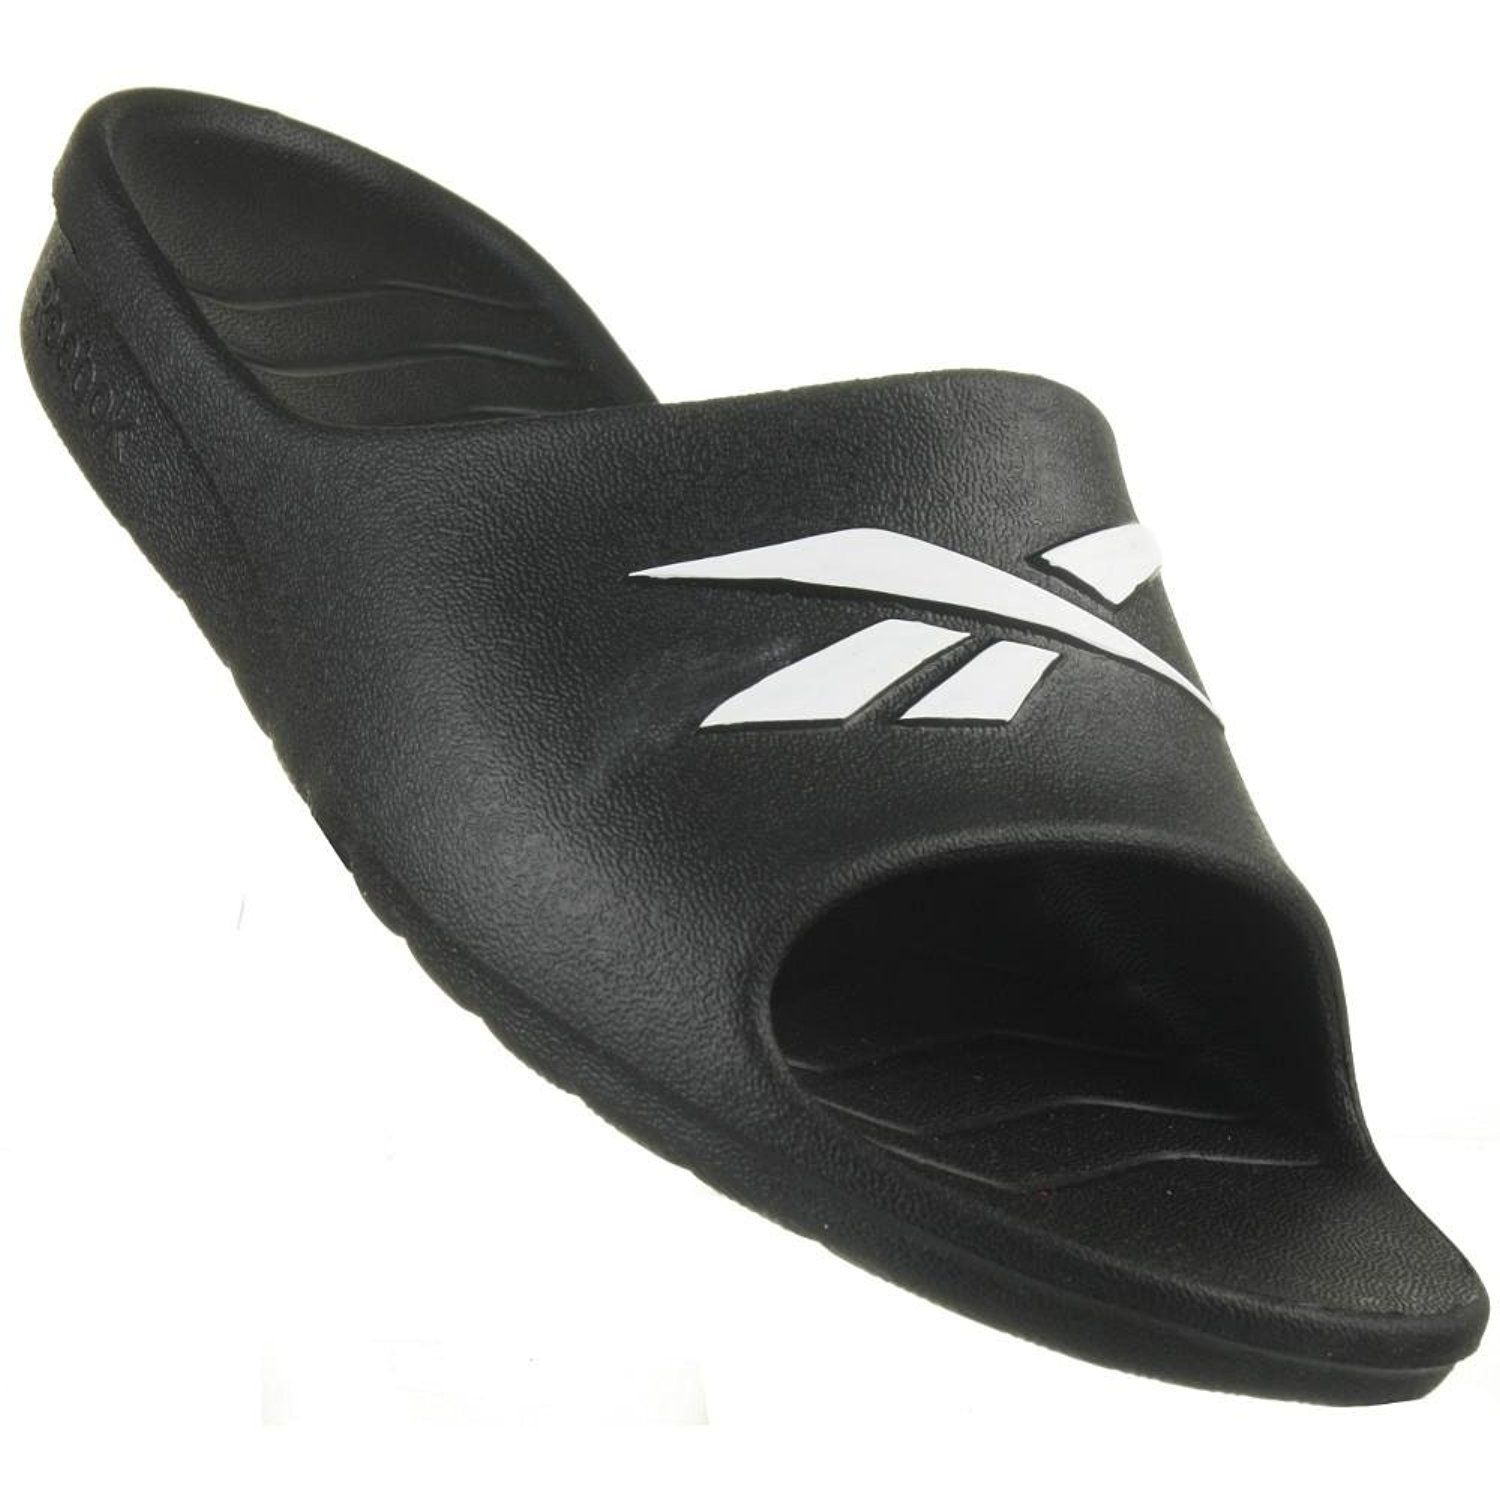 reebok shower shoes Online Shopping for